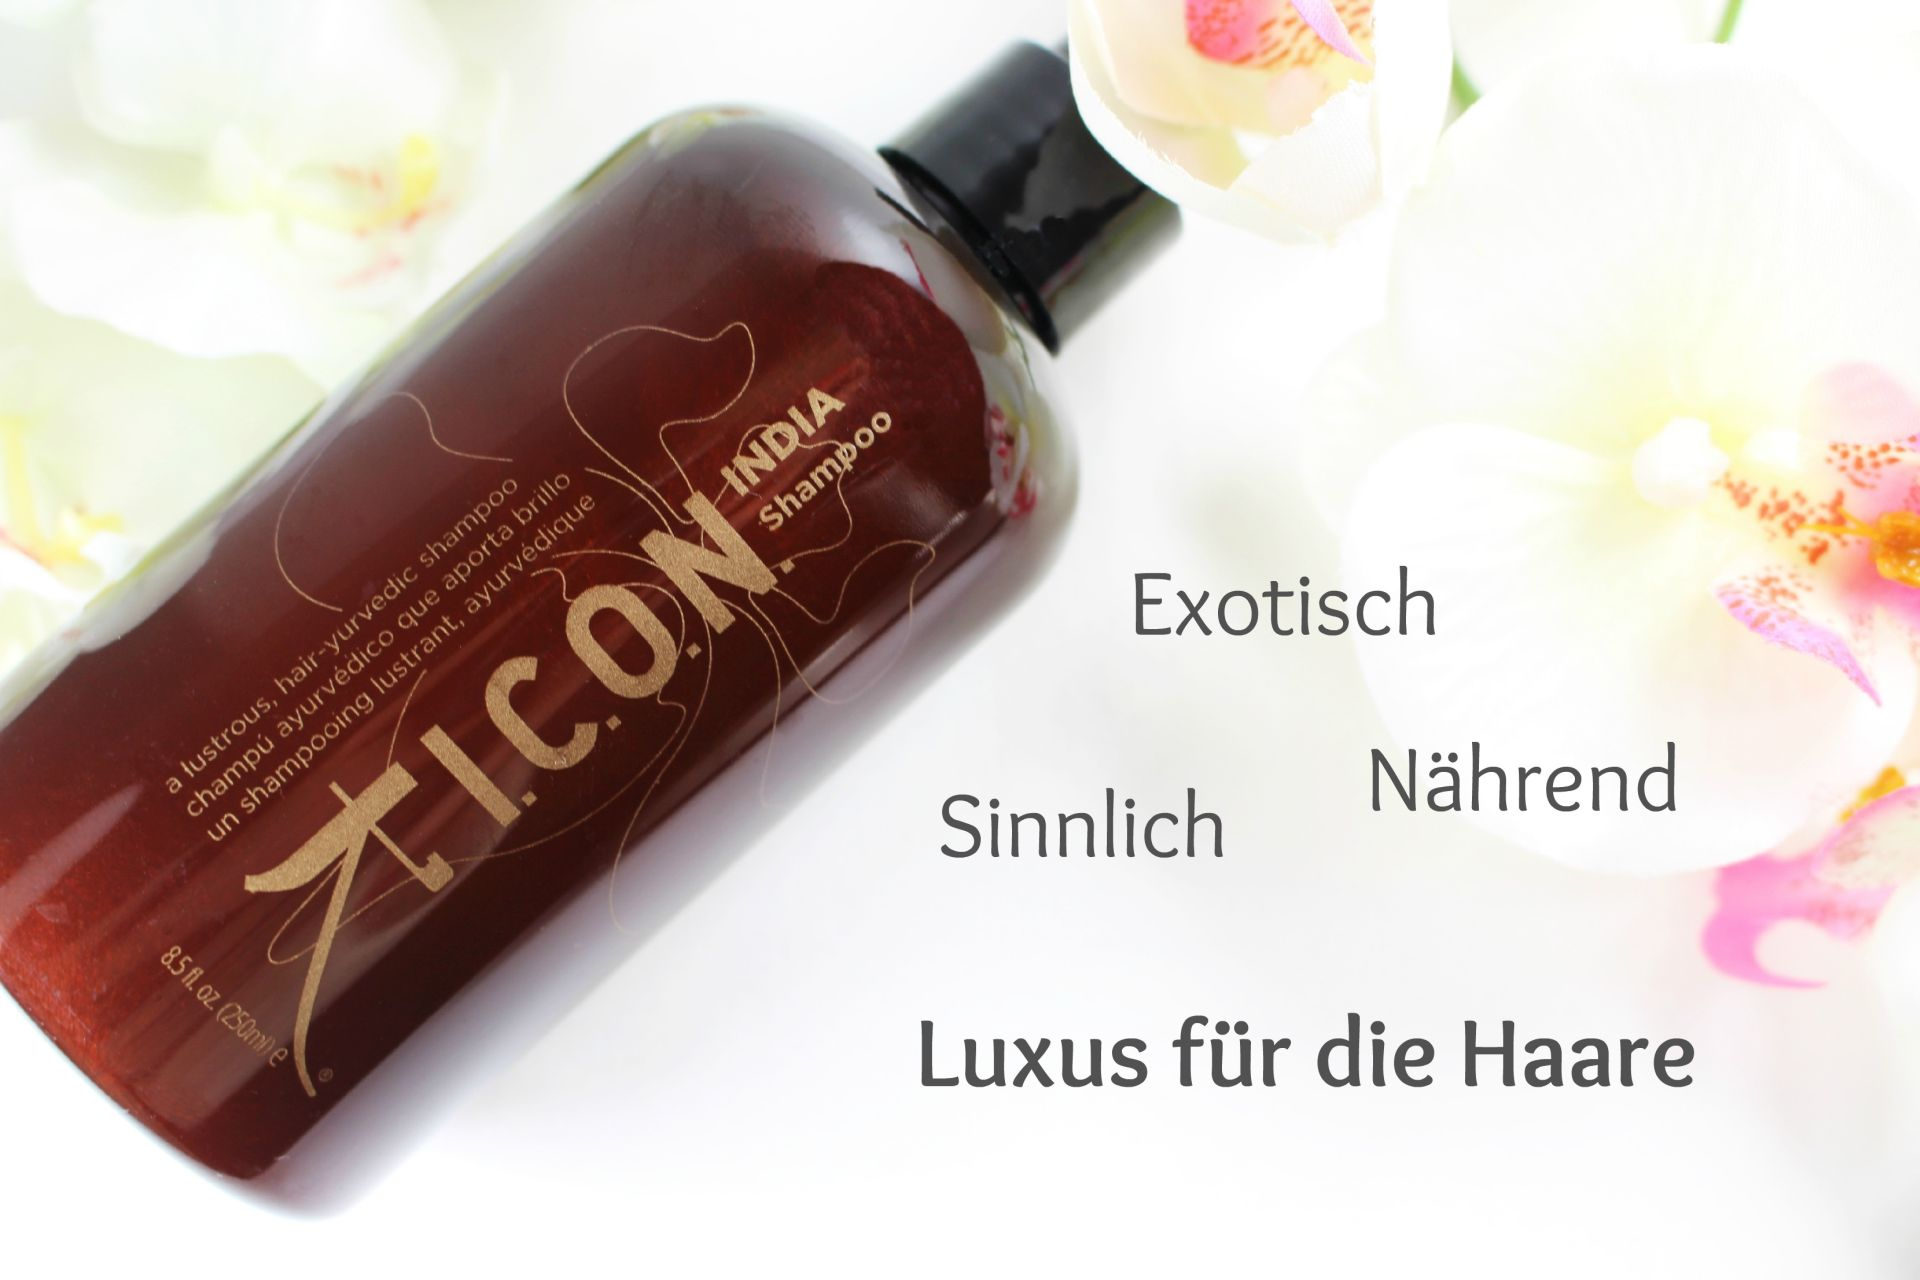 Hairlabs ICON India Shampoo, ICON India Oil, ICON India Shampoo Ingredients, Haarpflege Silikone, Super Twins Annalena und Magdalena